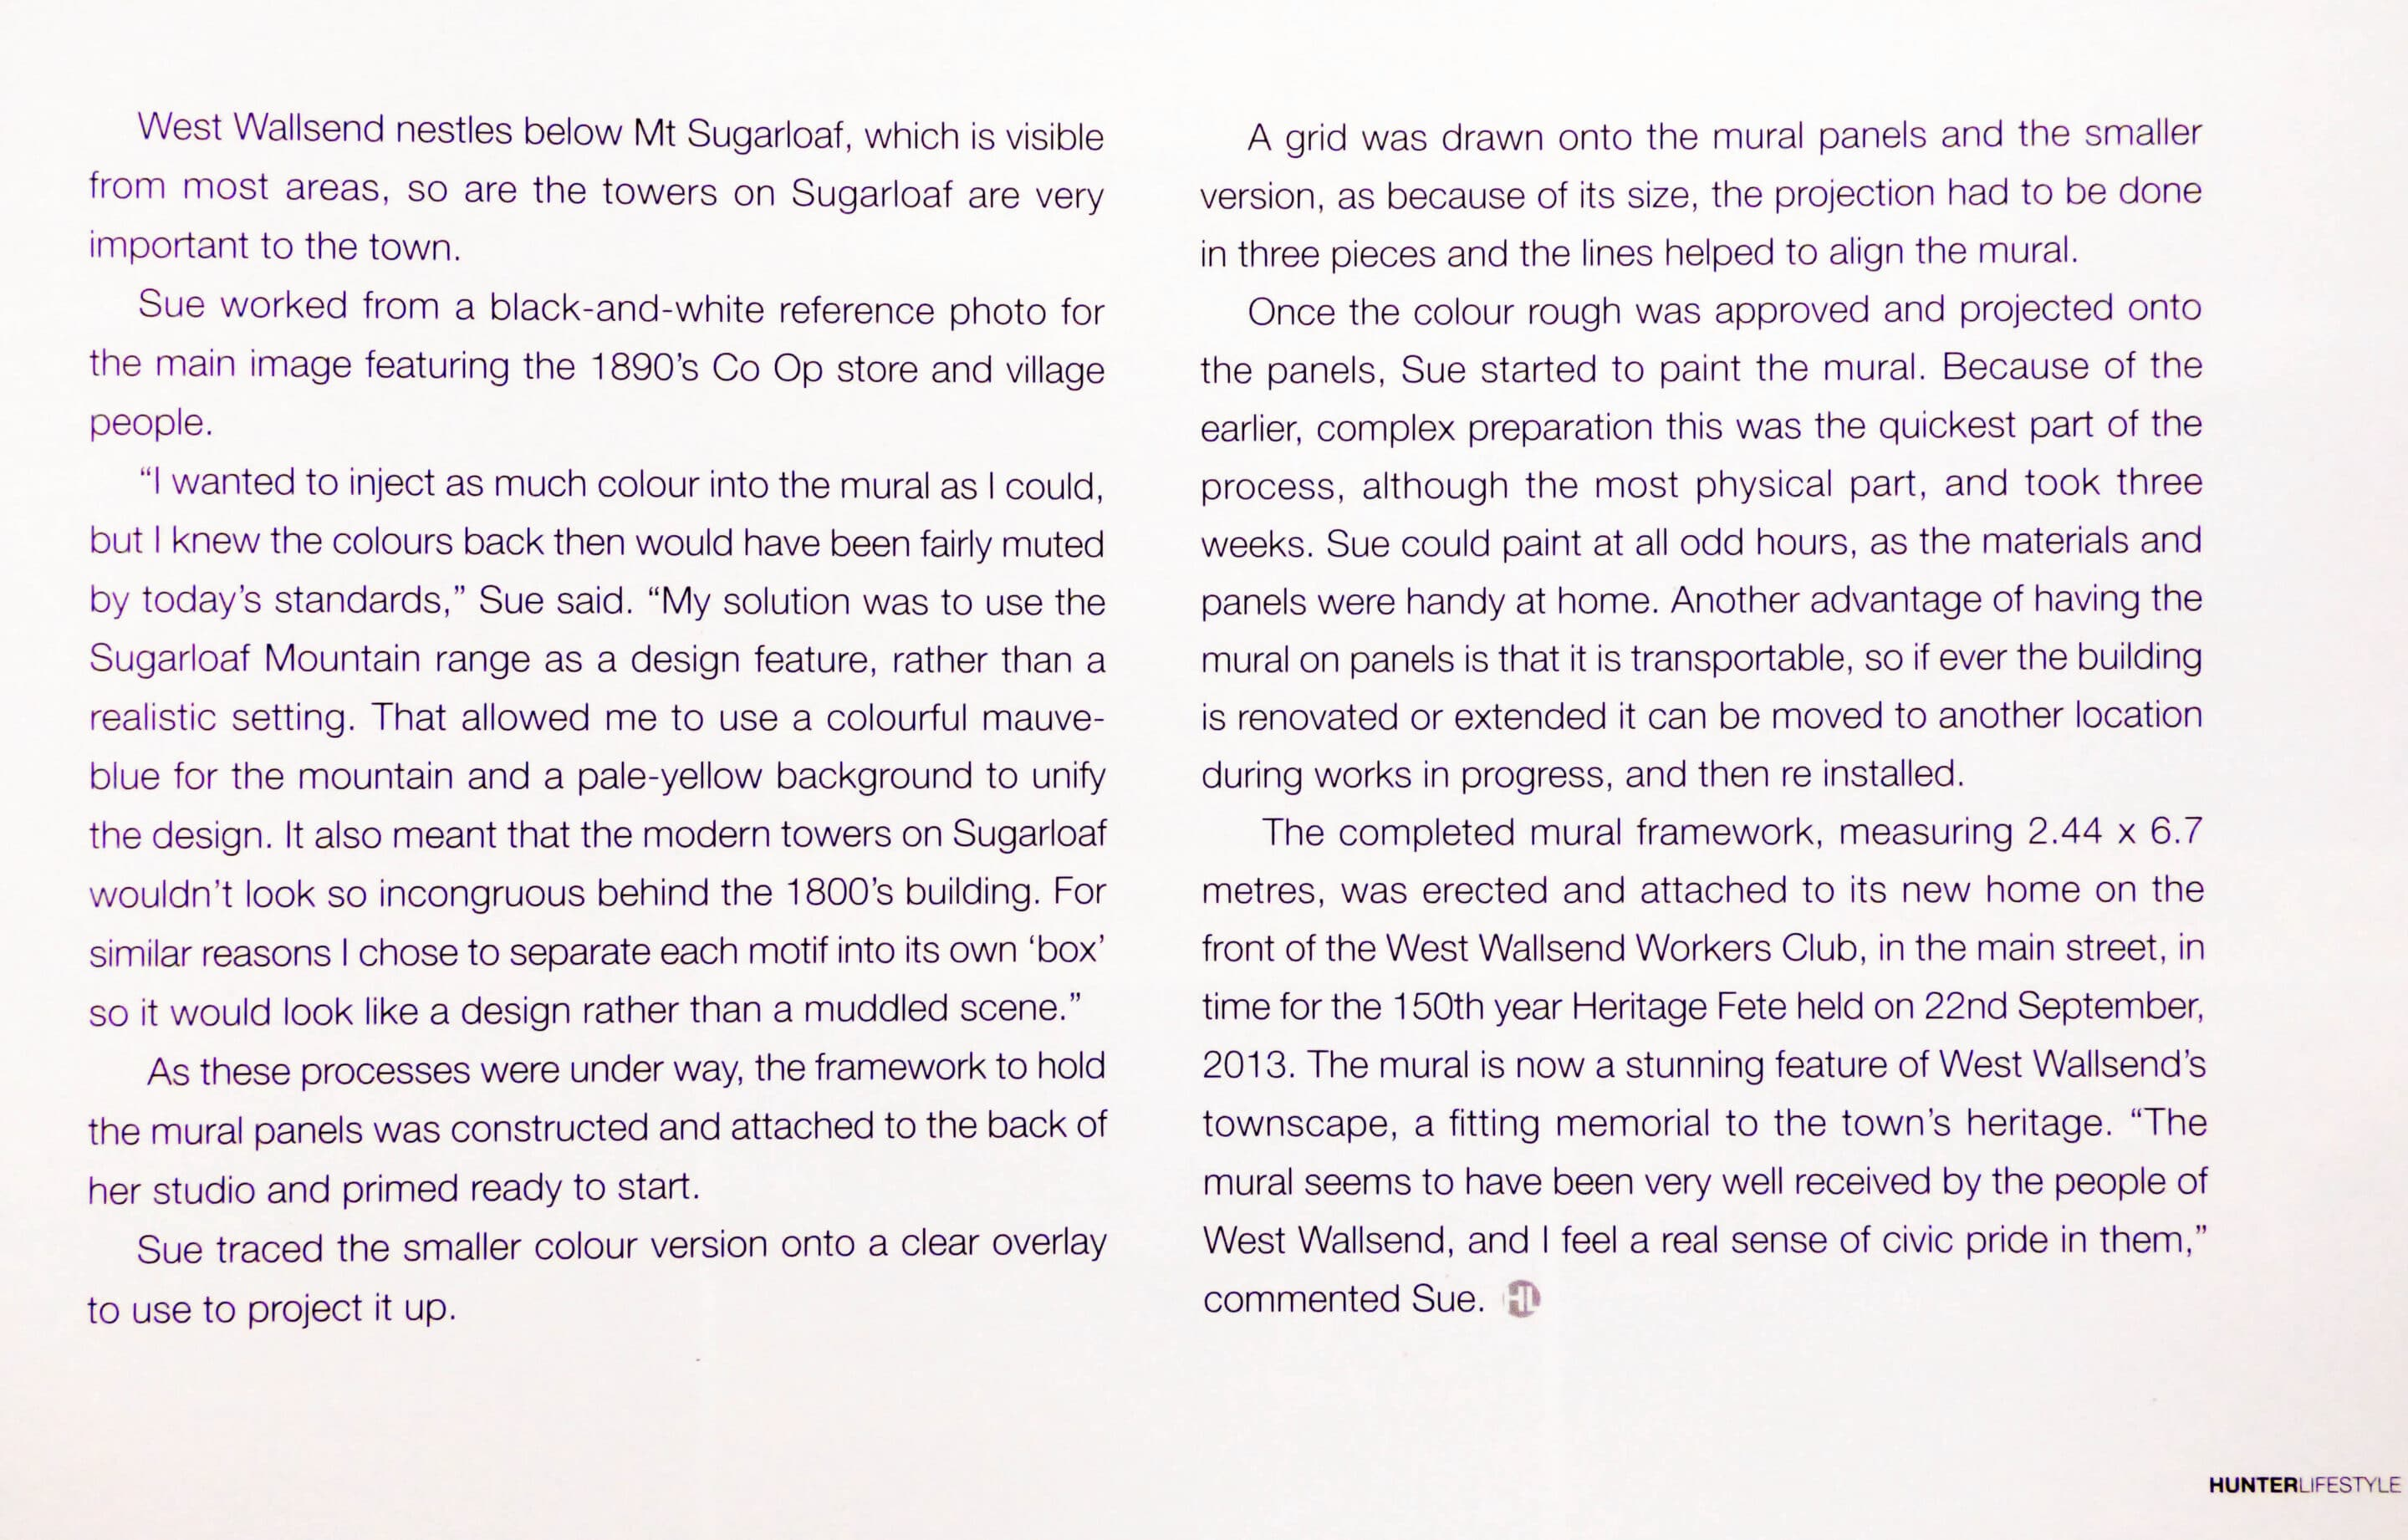 Here is a more readable text for pages 2 + 3.